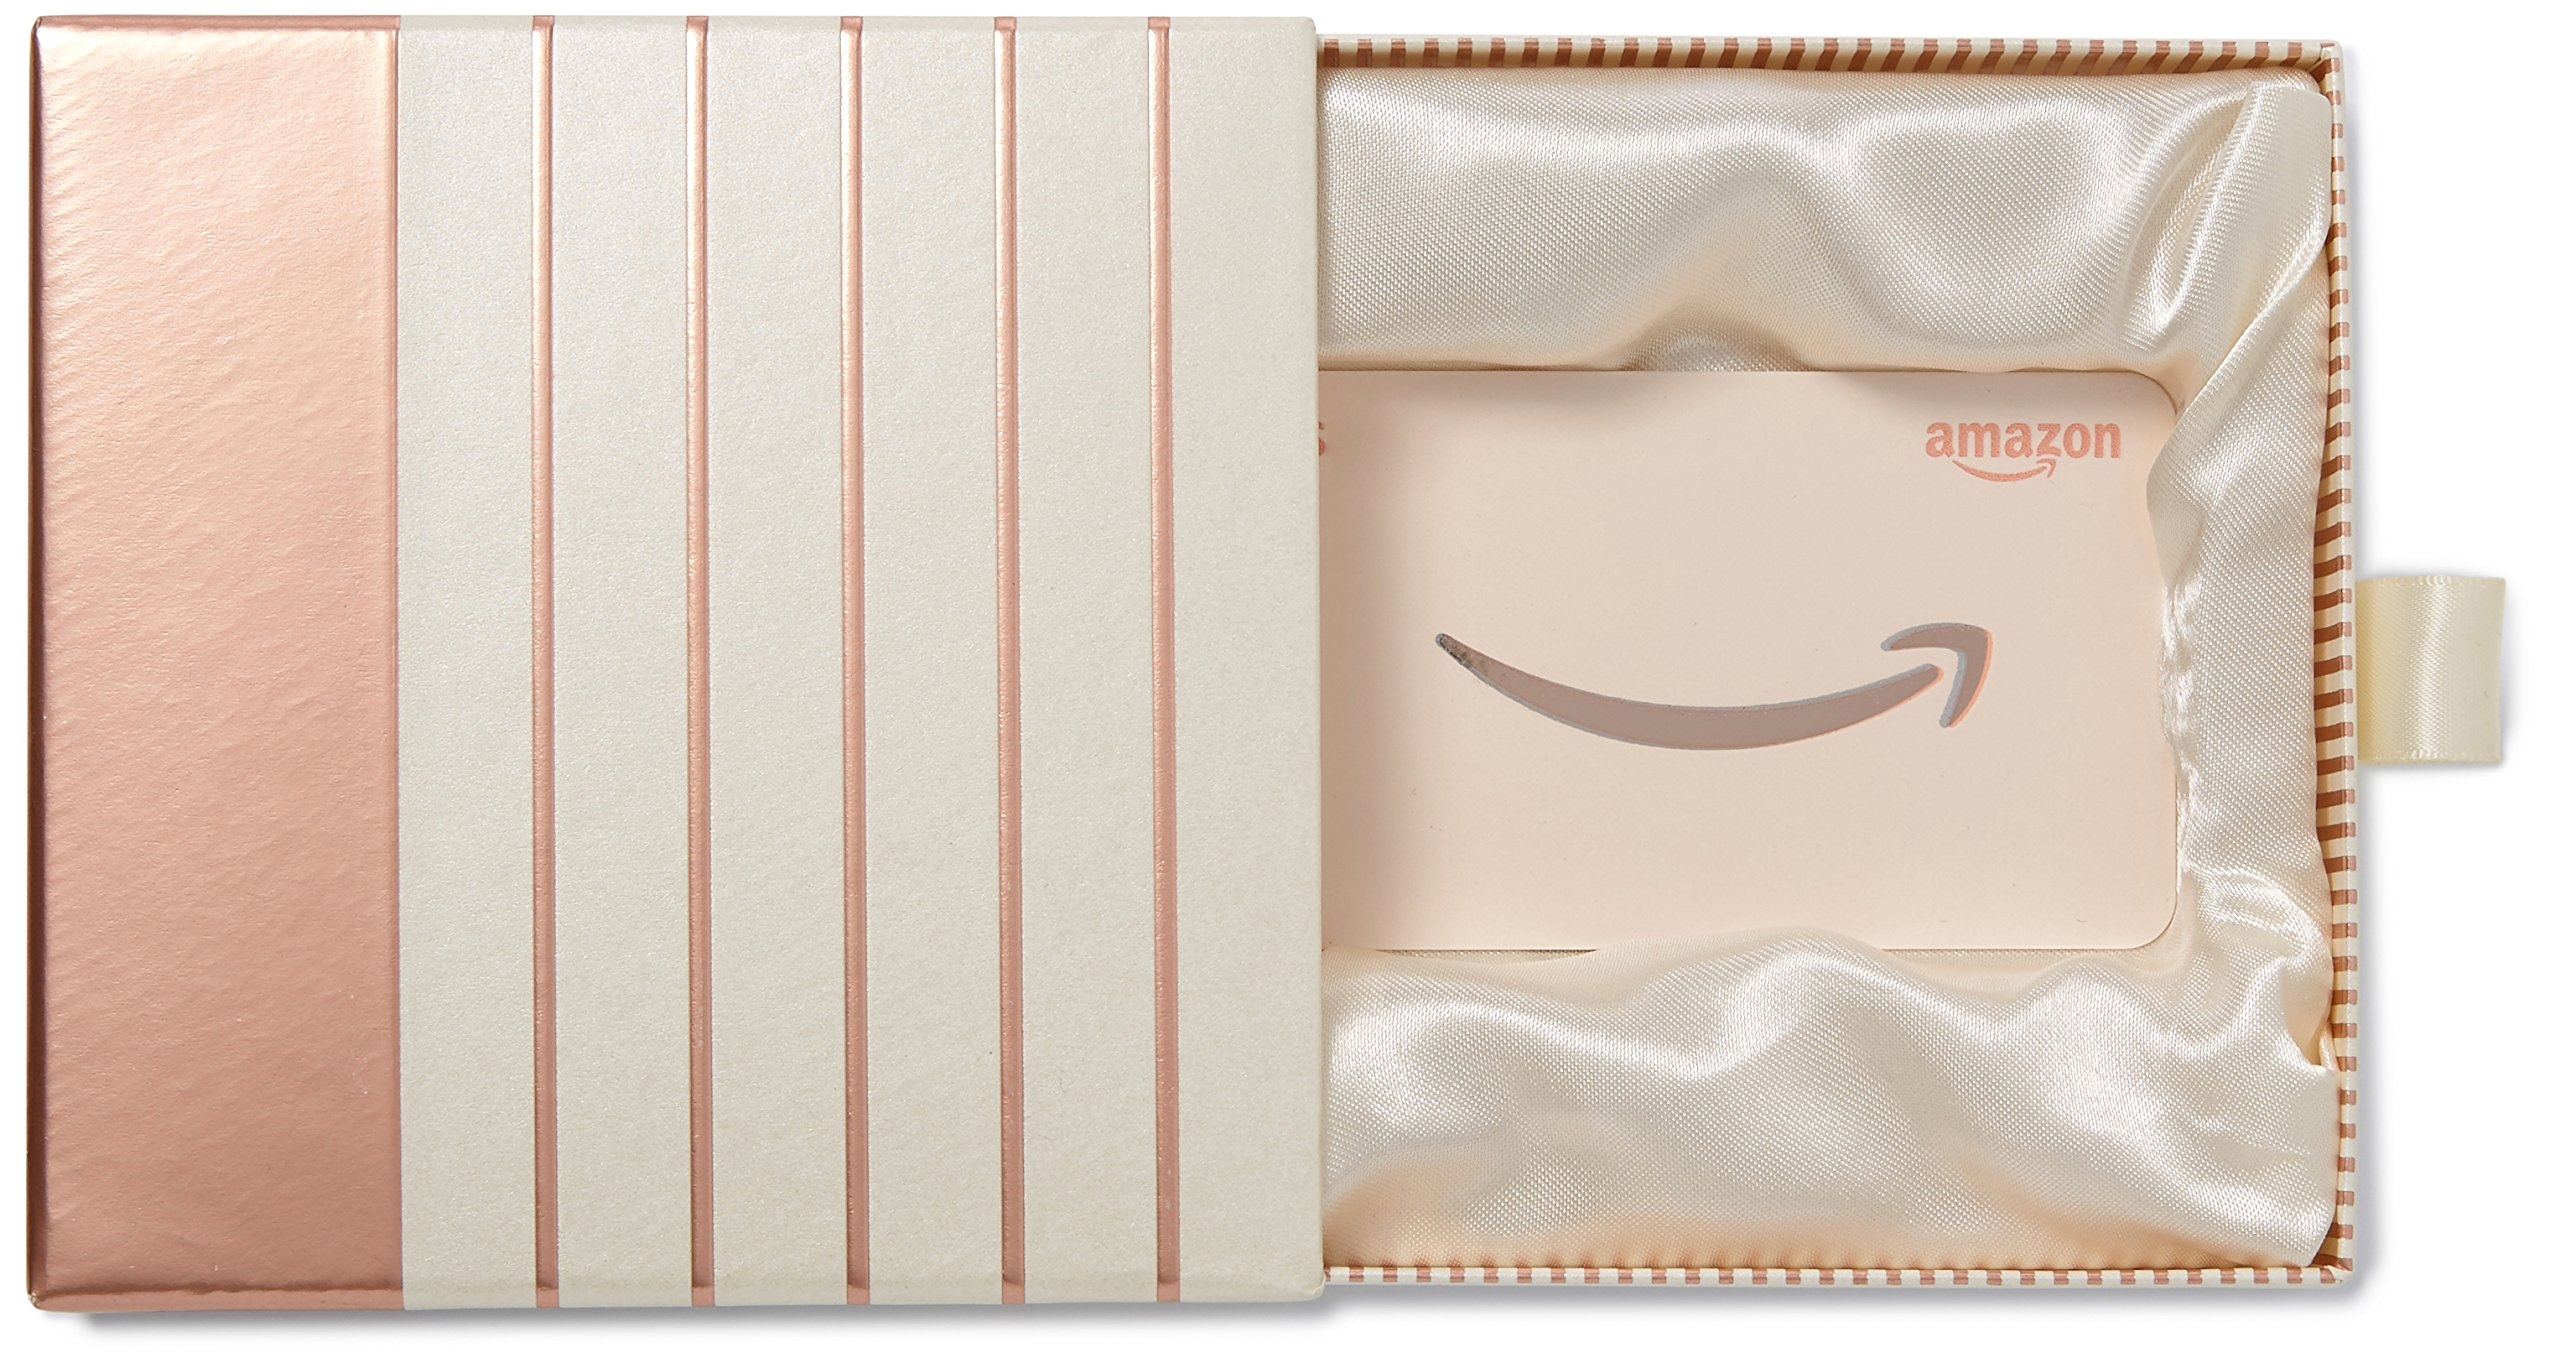 Amazon.com Gift Card in a Premium Gift Box (Rose Gold) by Amazon